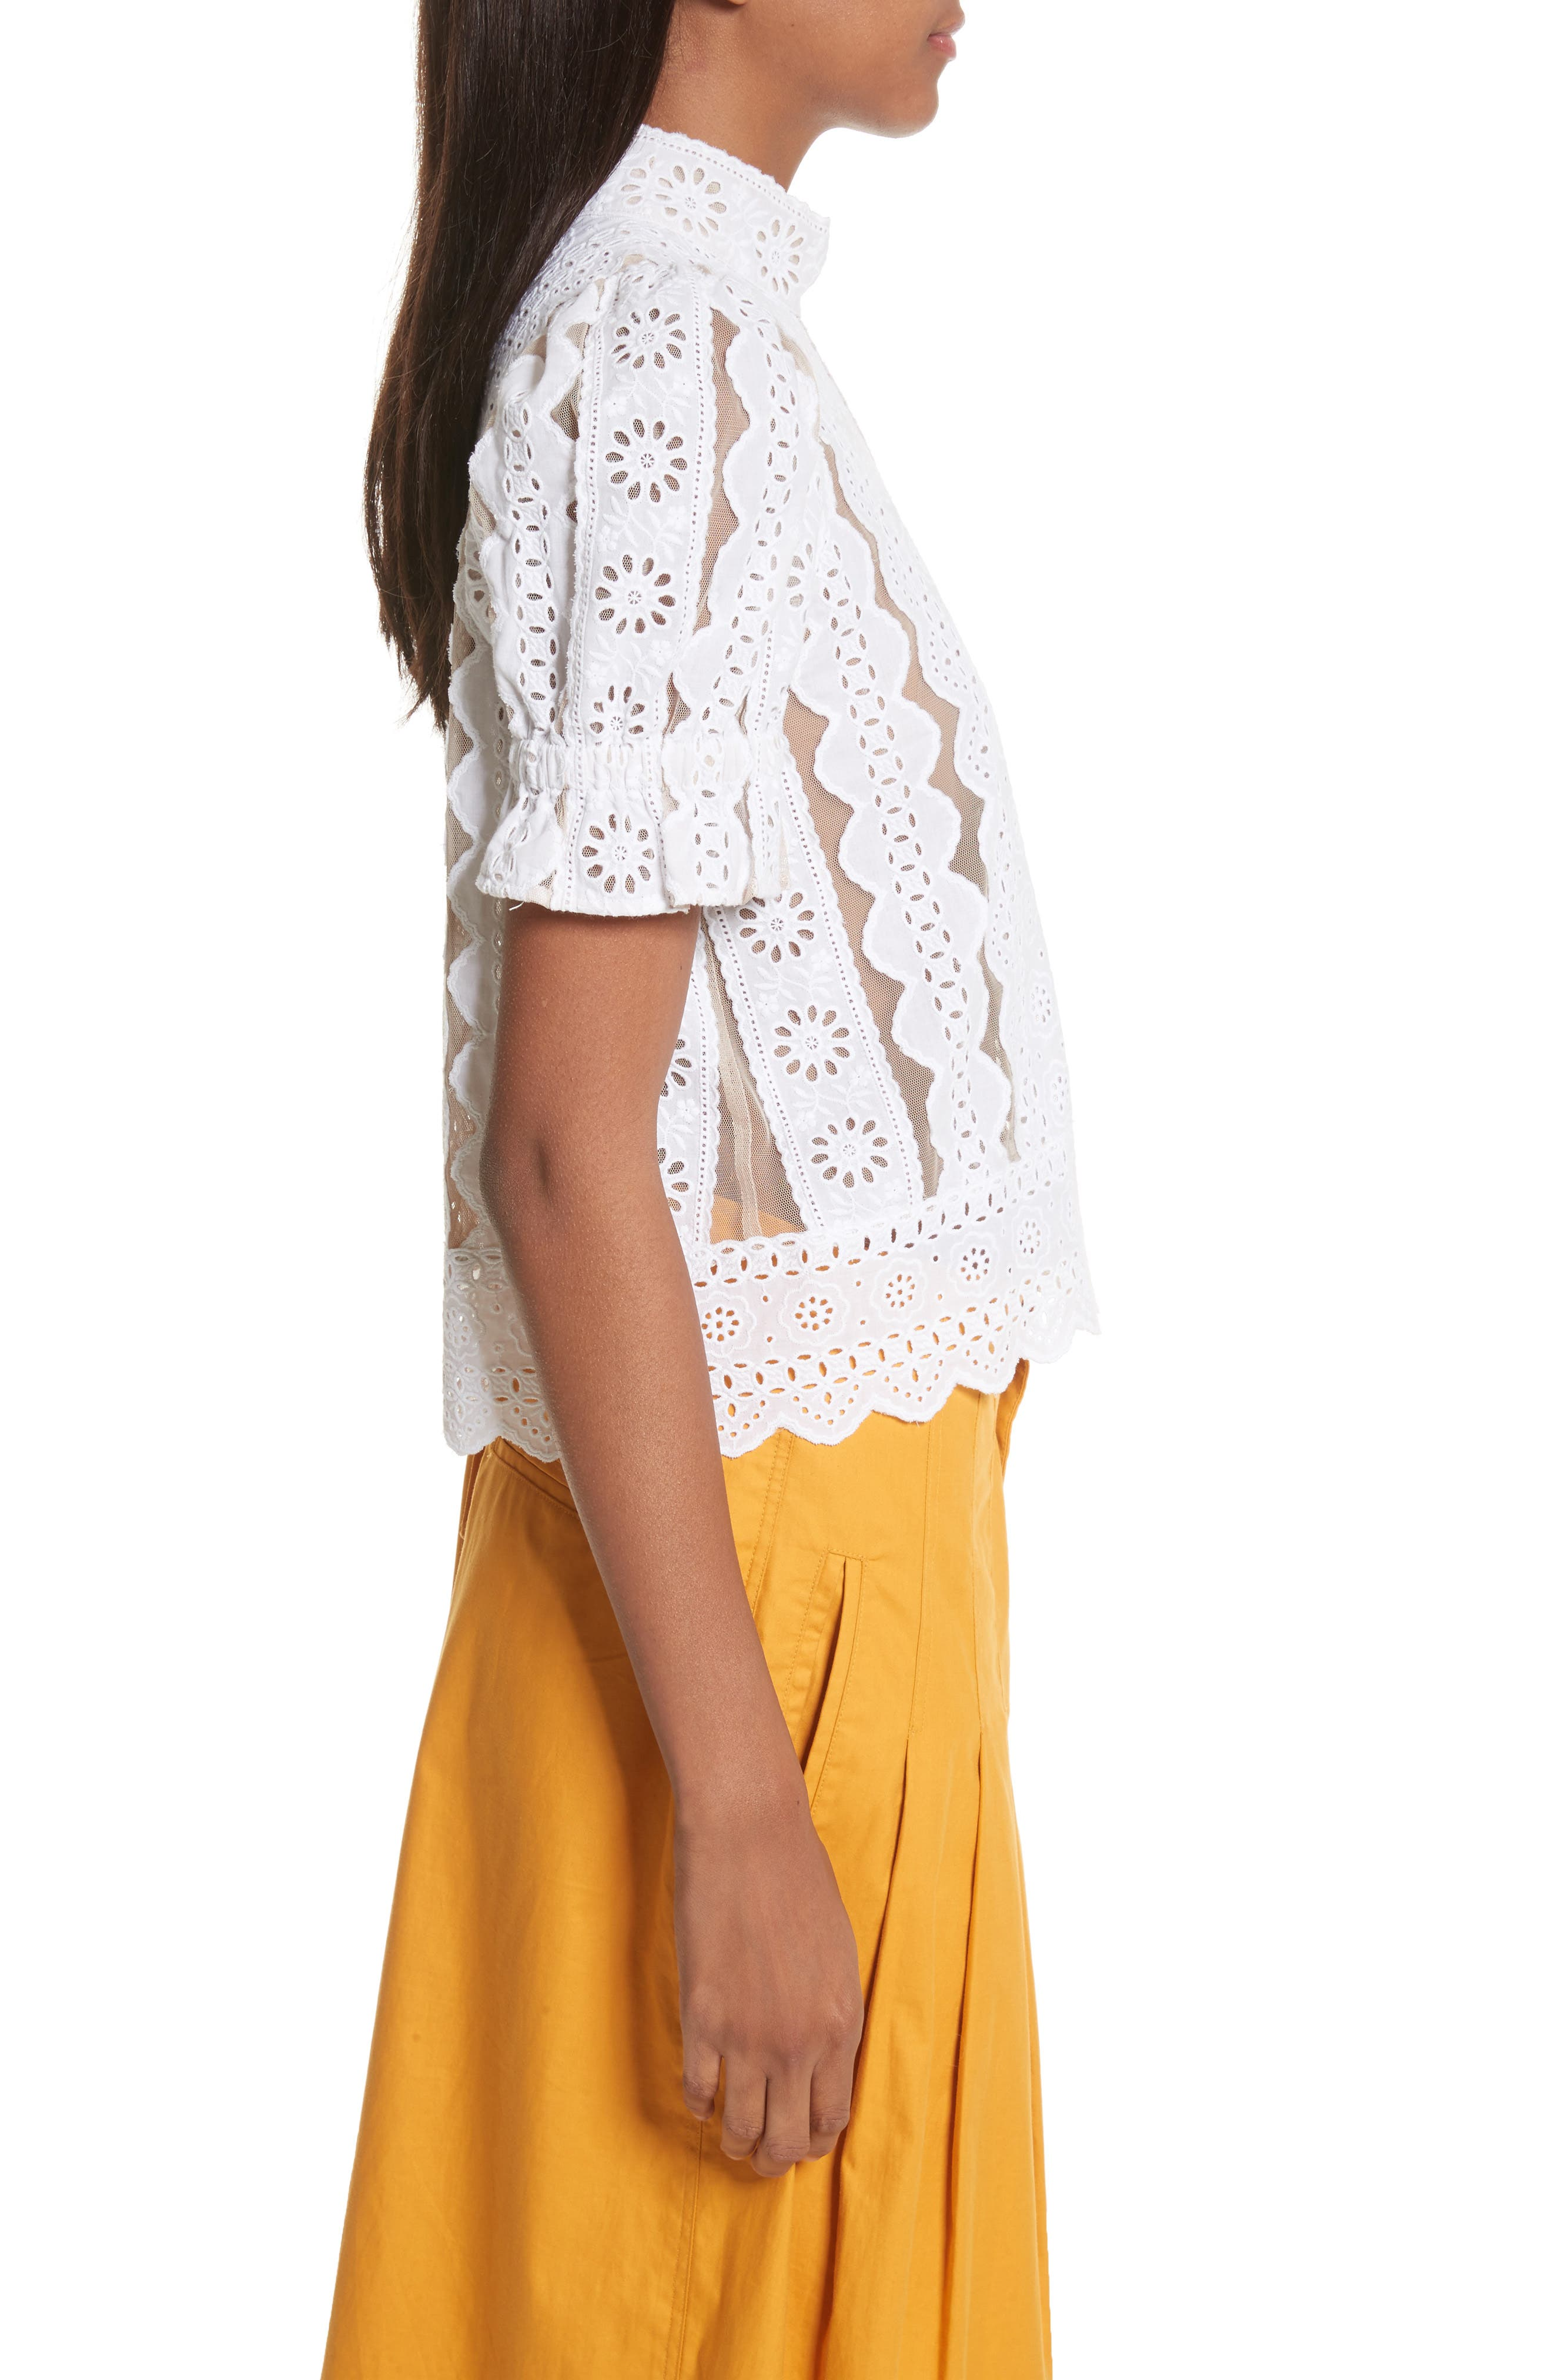 Luna Cotton Eyelet Top,                             Alternate thumbnail 3, color,                             White With Nude Mesh